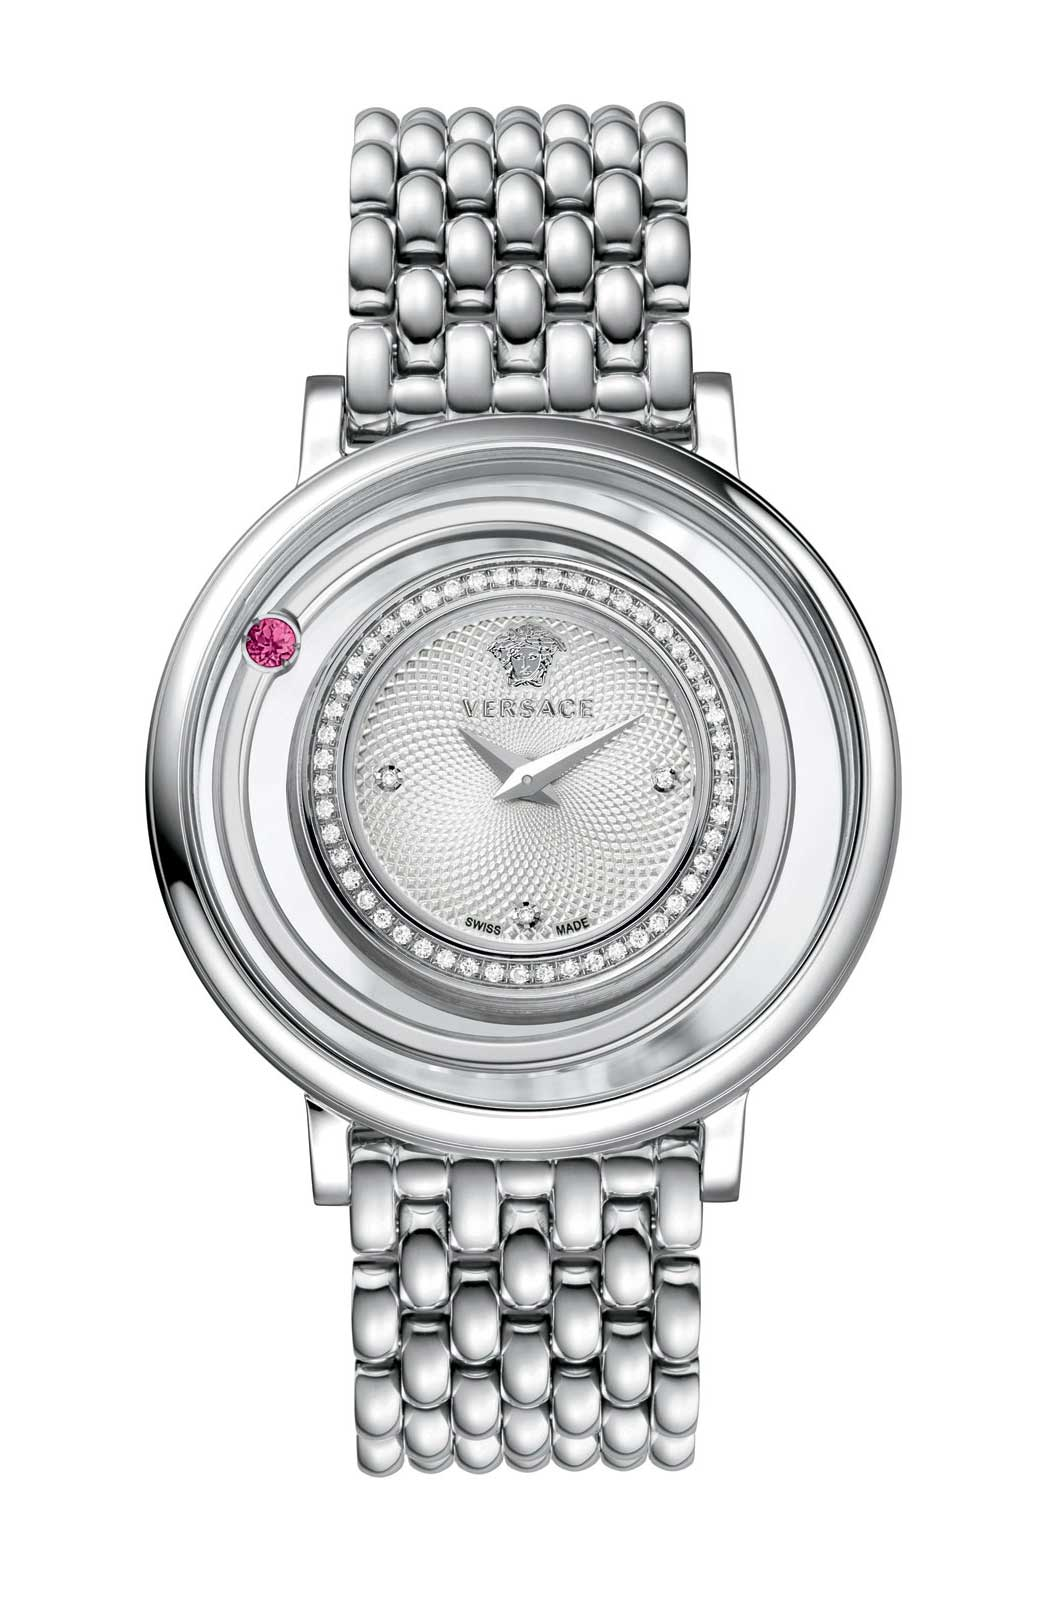 Versace women's watches13